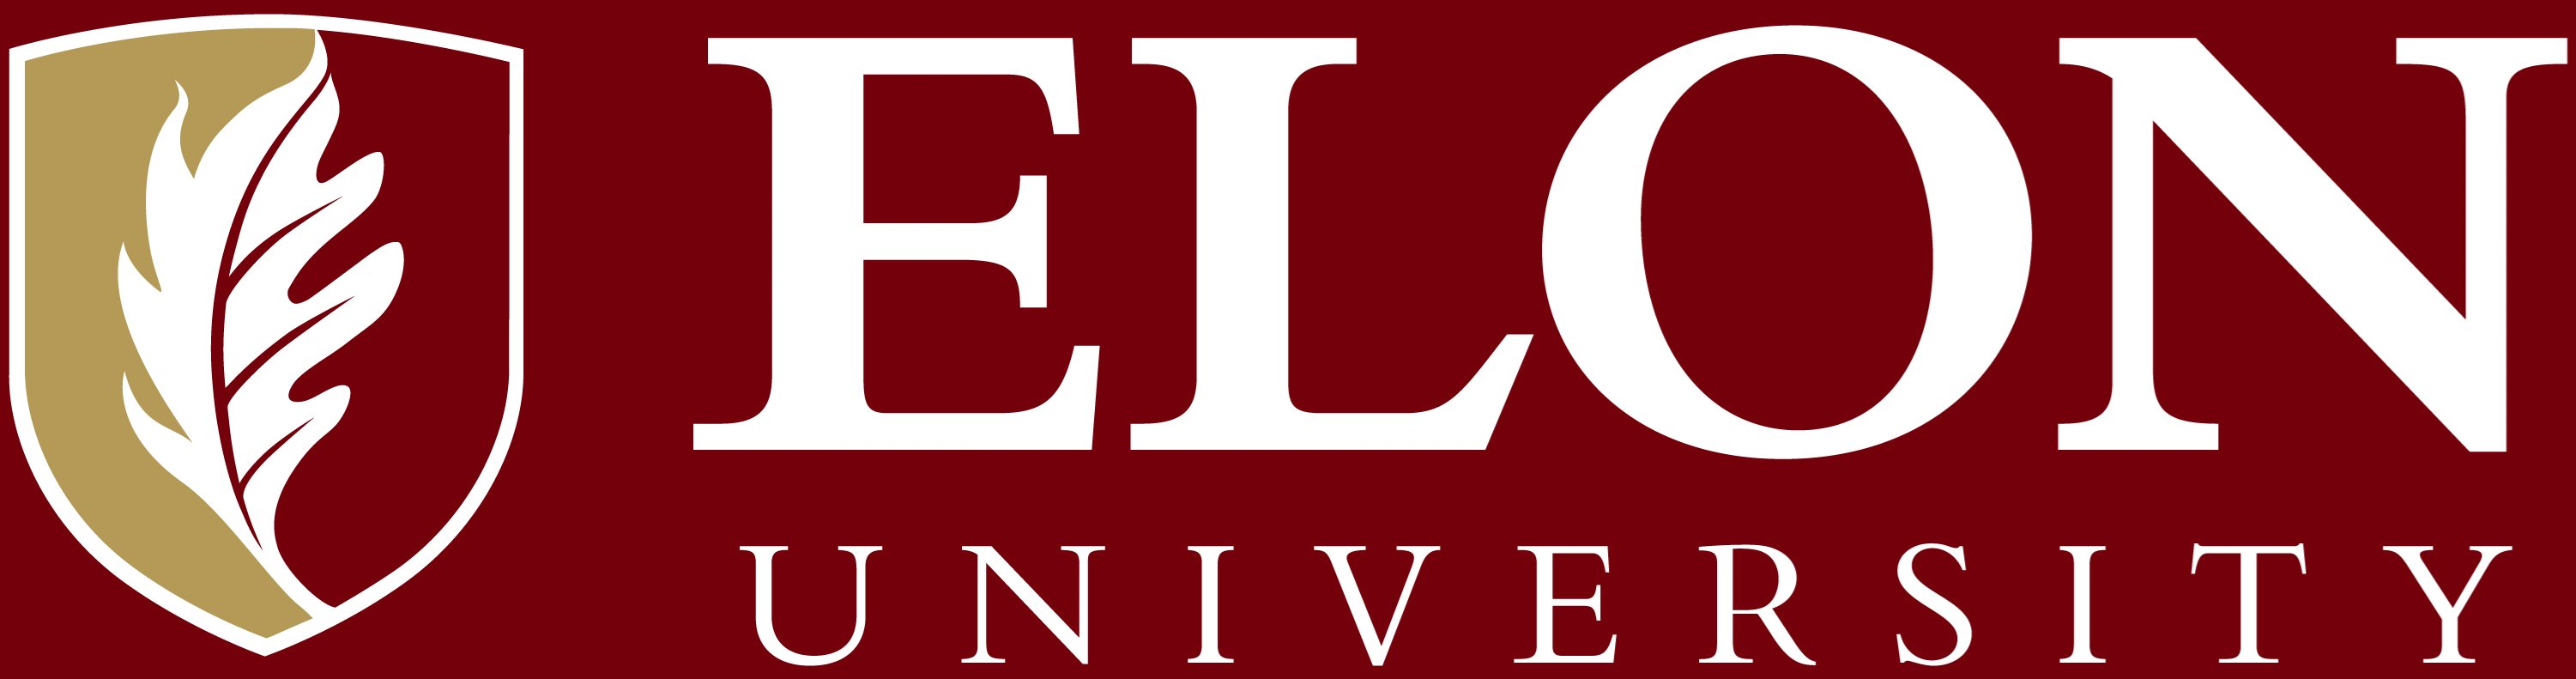 Elon University primary signature reversed example